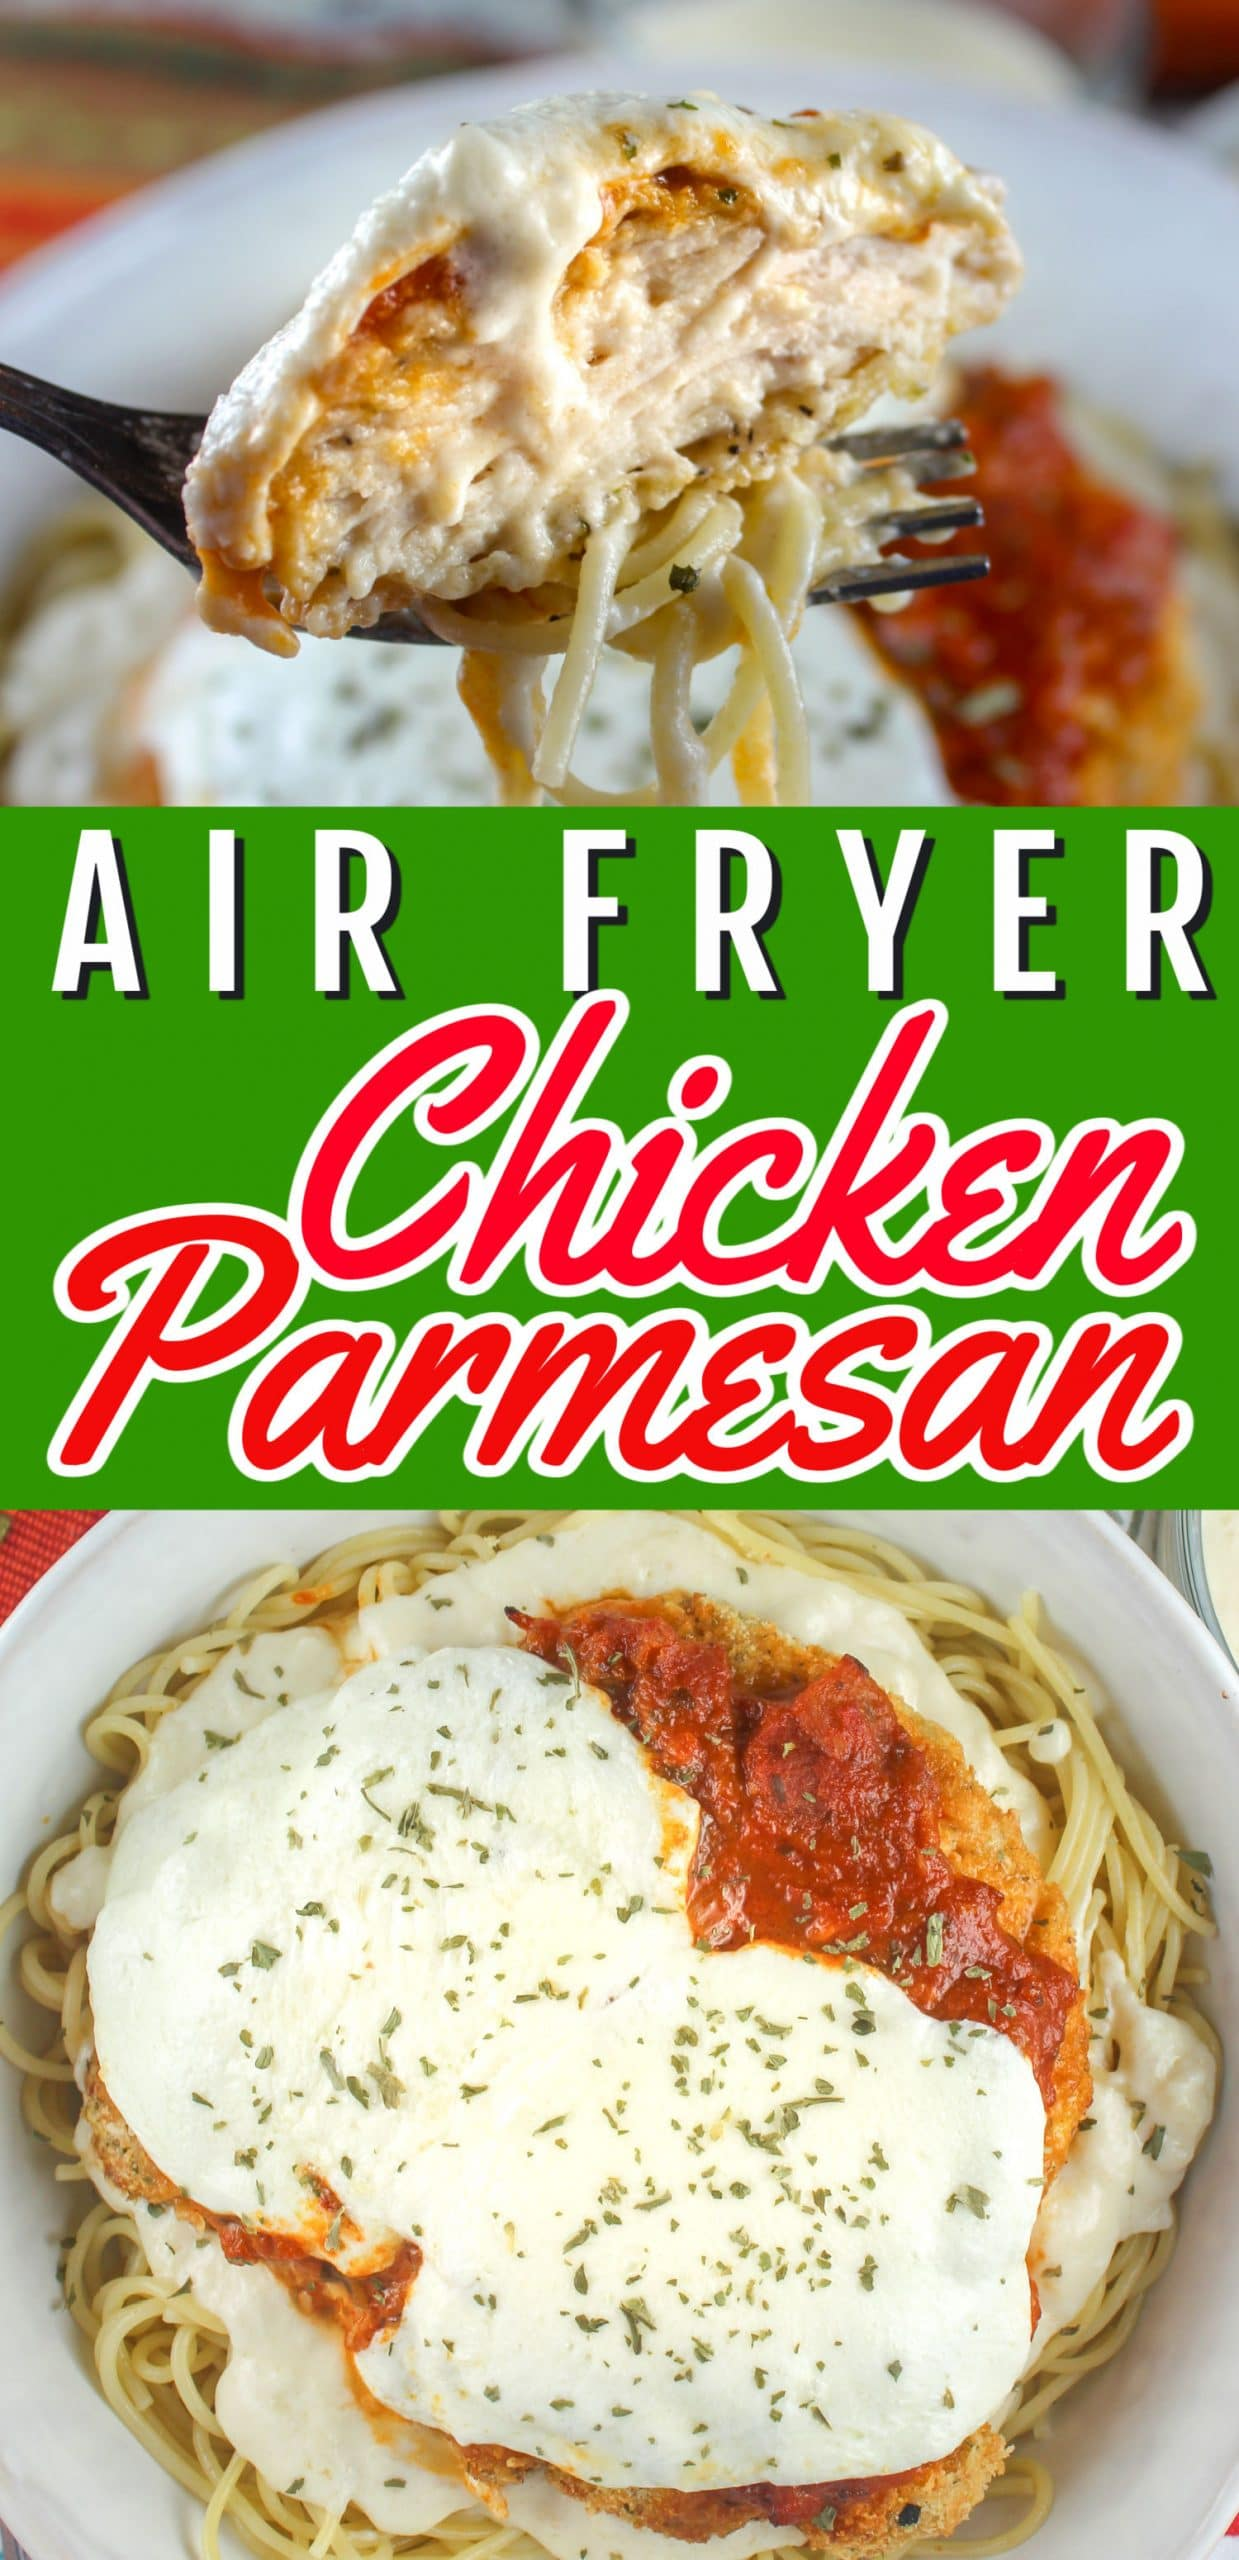 Air Fryer Chicken Parmesan is so delicious! I've been making it every week - and my dinner is ready in under 20 minutes! I've been so excited to share this with you - especially my jazzed up version with a little alfredo sauce too!  via @foodhussy